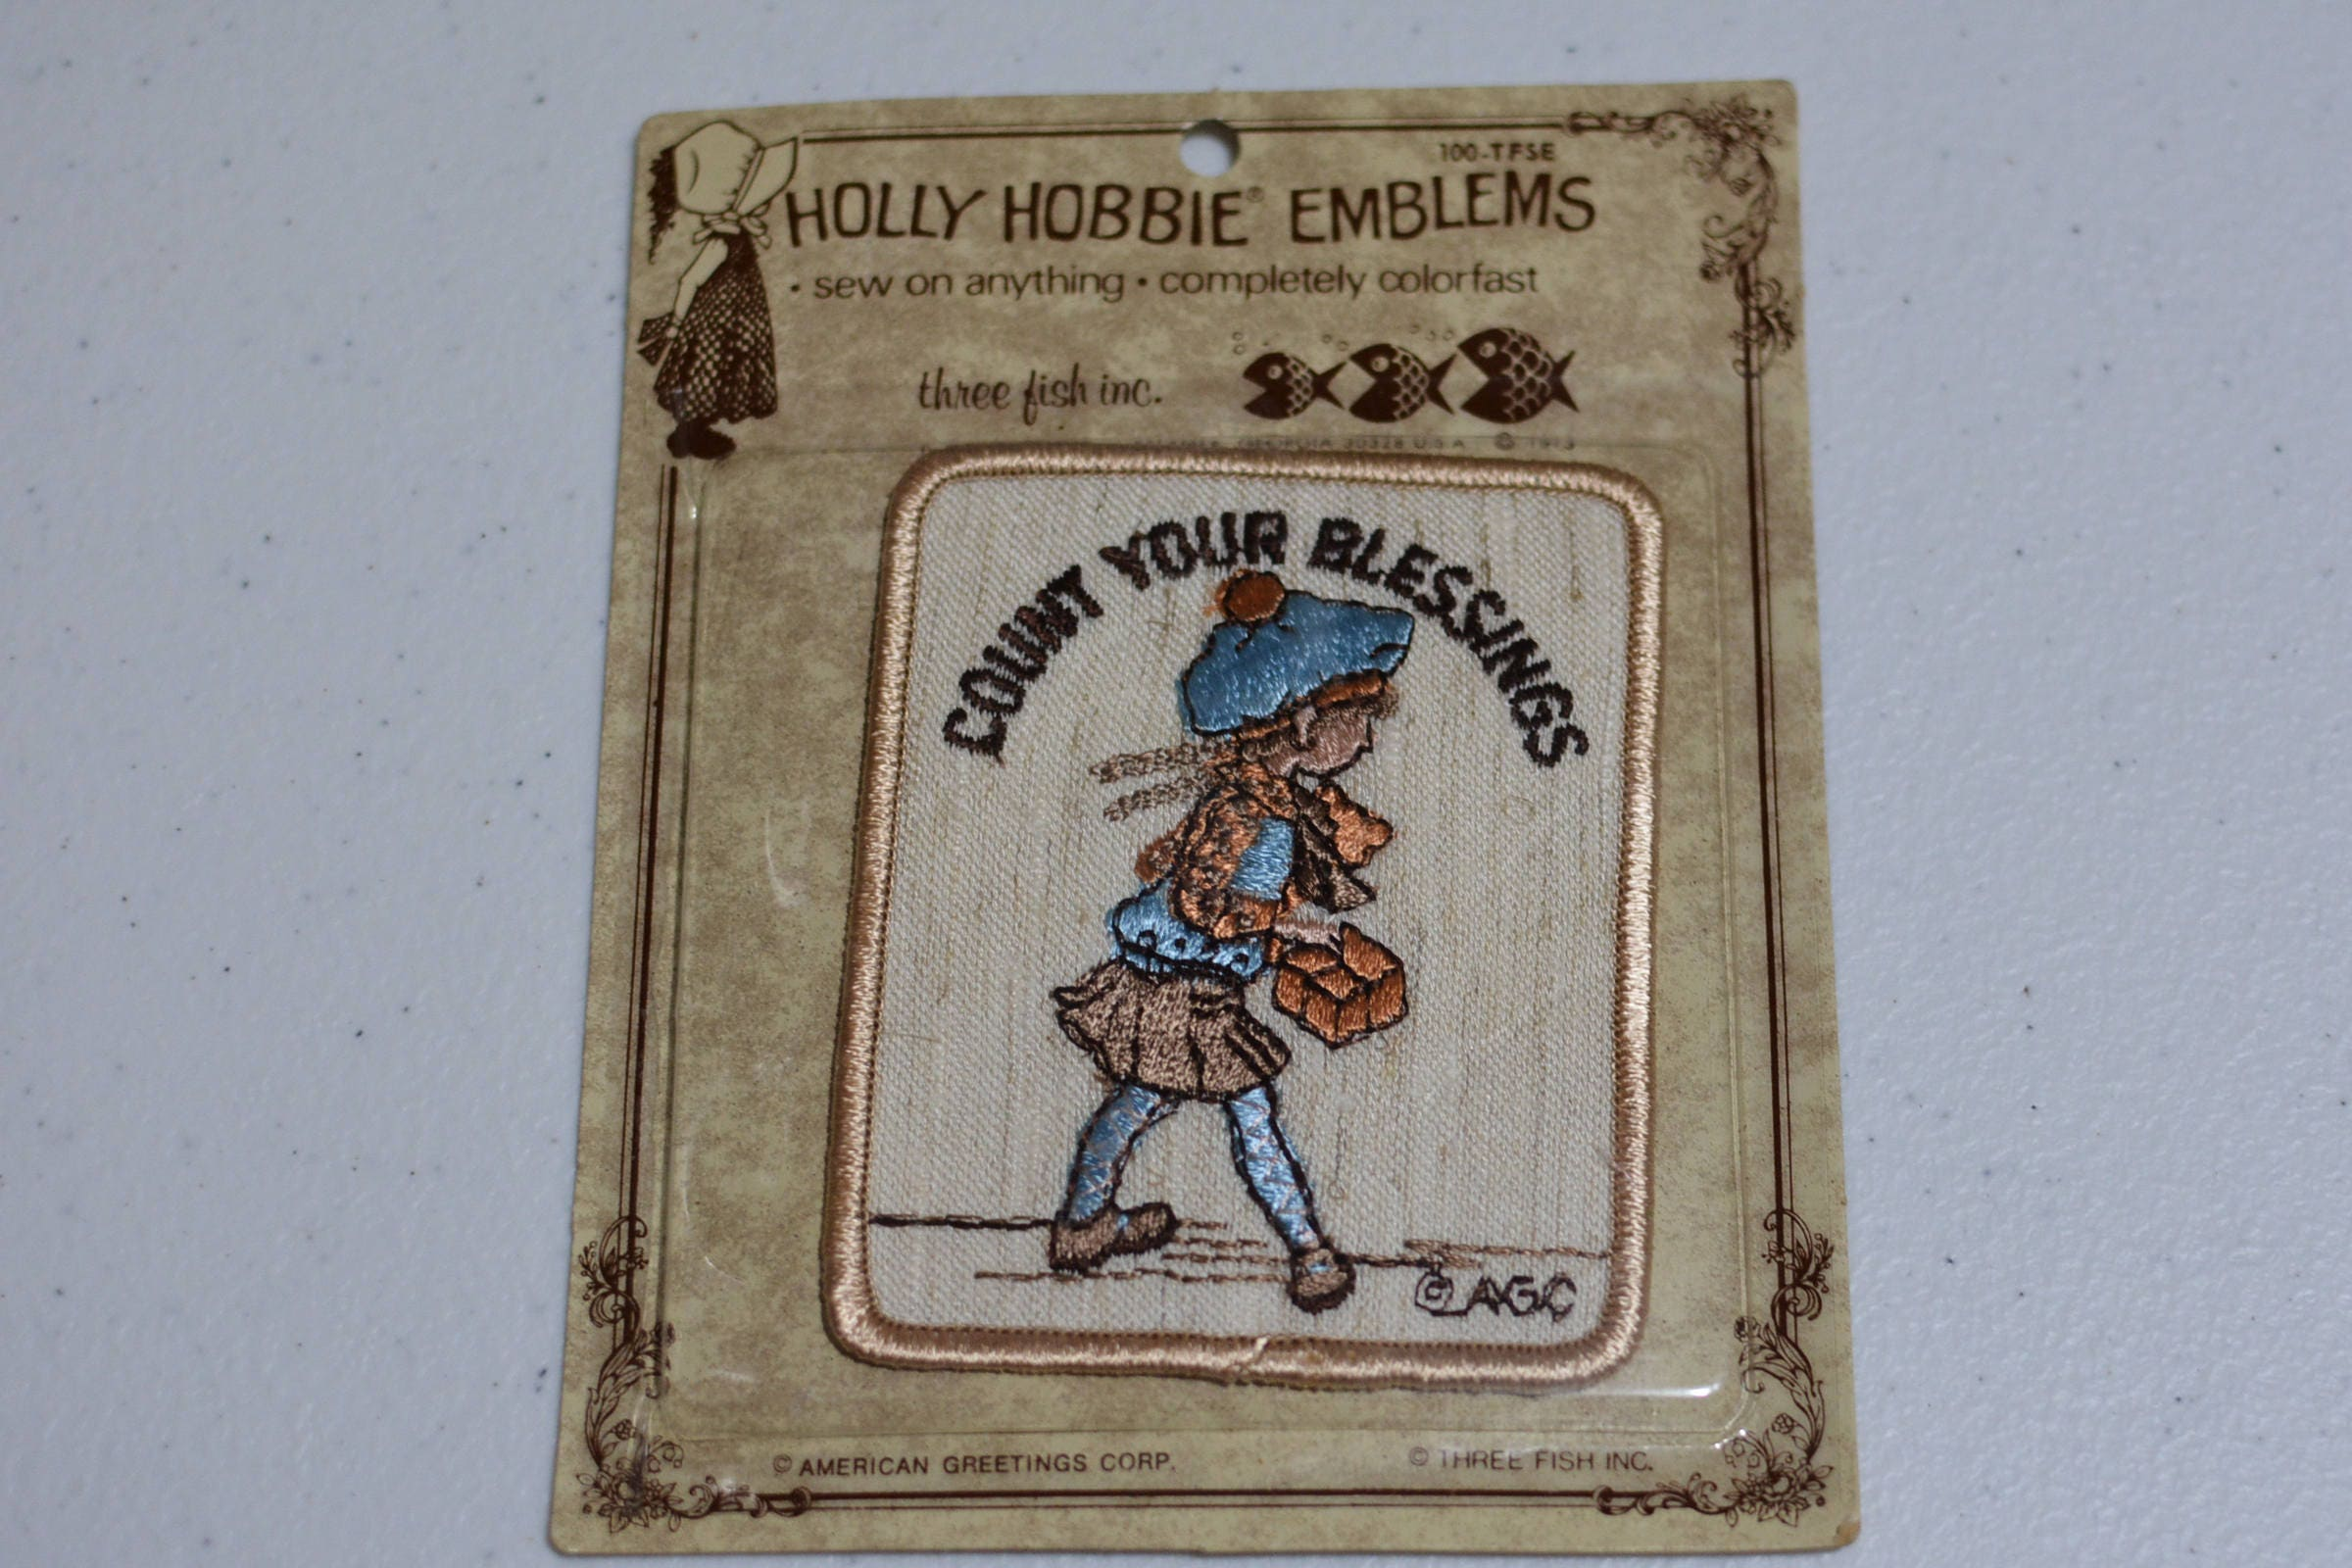 Count your blessings agc holly hobbie emblems sew on vintage count your blessings agc holly hobbie emblems sew on vintage embroidered patch rare american greetings diy clothing 1970s sealed e19u m4hsunfo